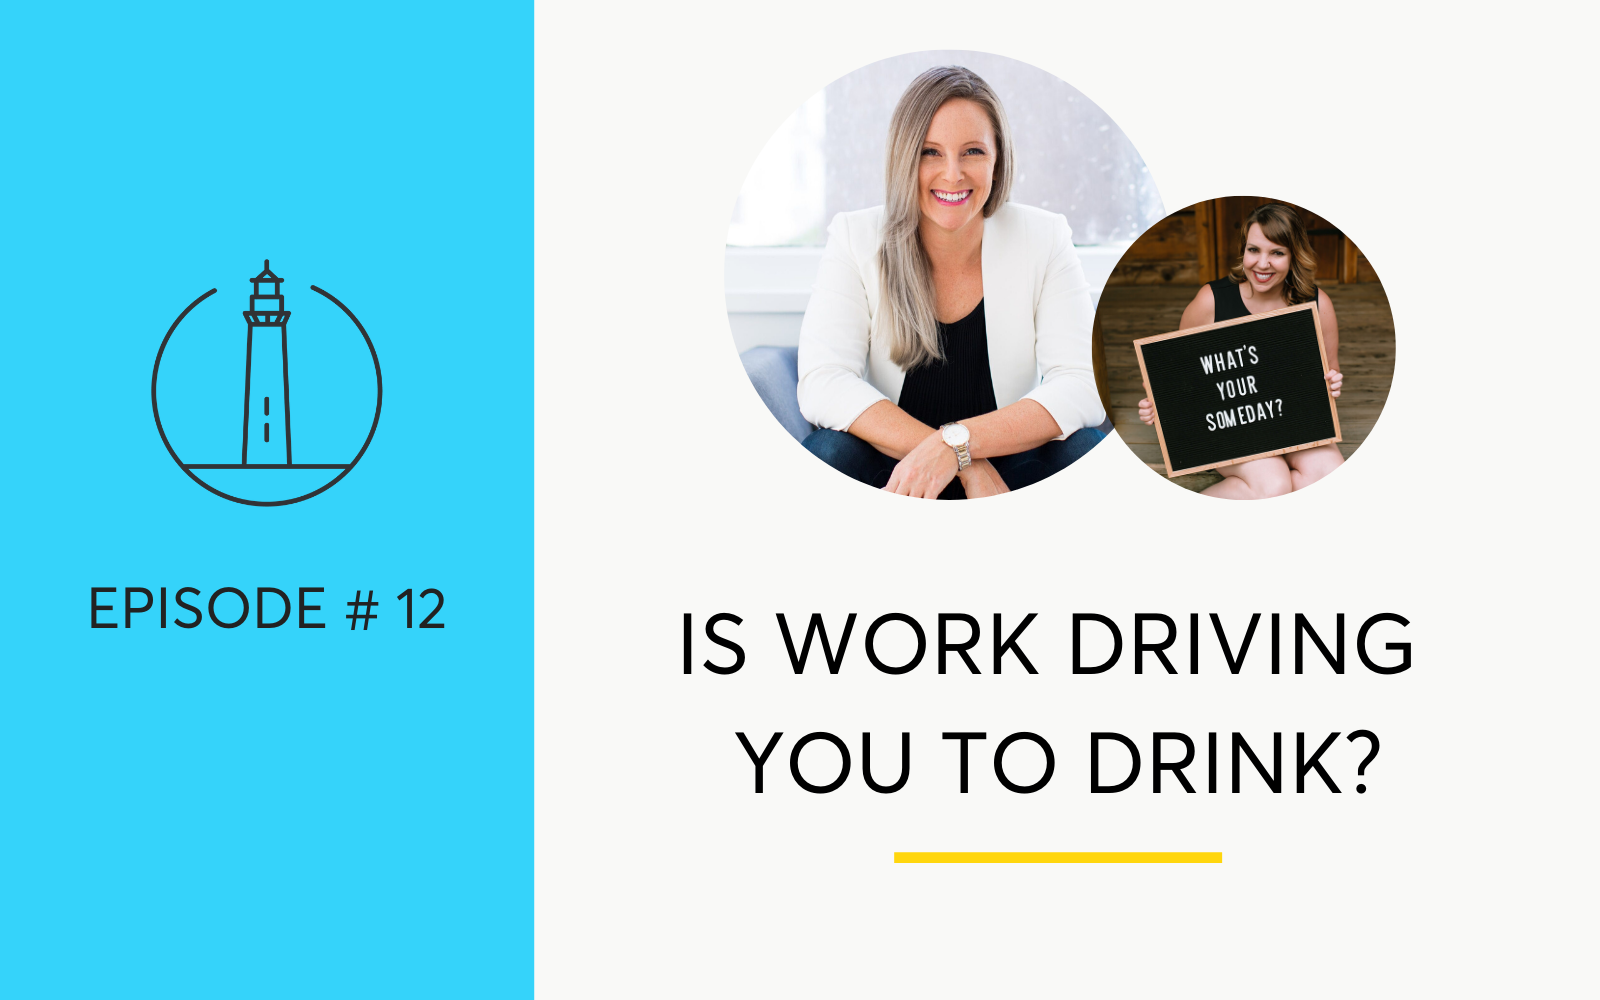 Is Work A Trigger That's Driving You To Drink?